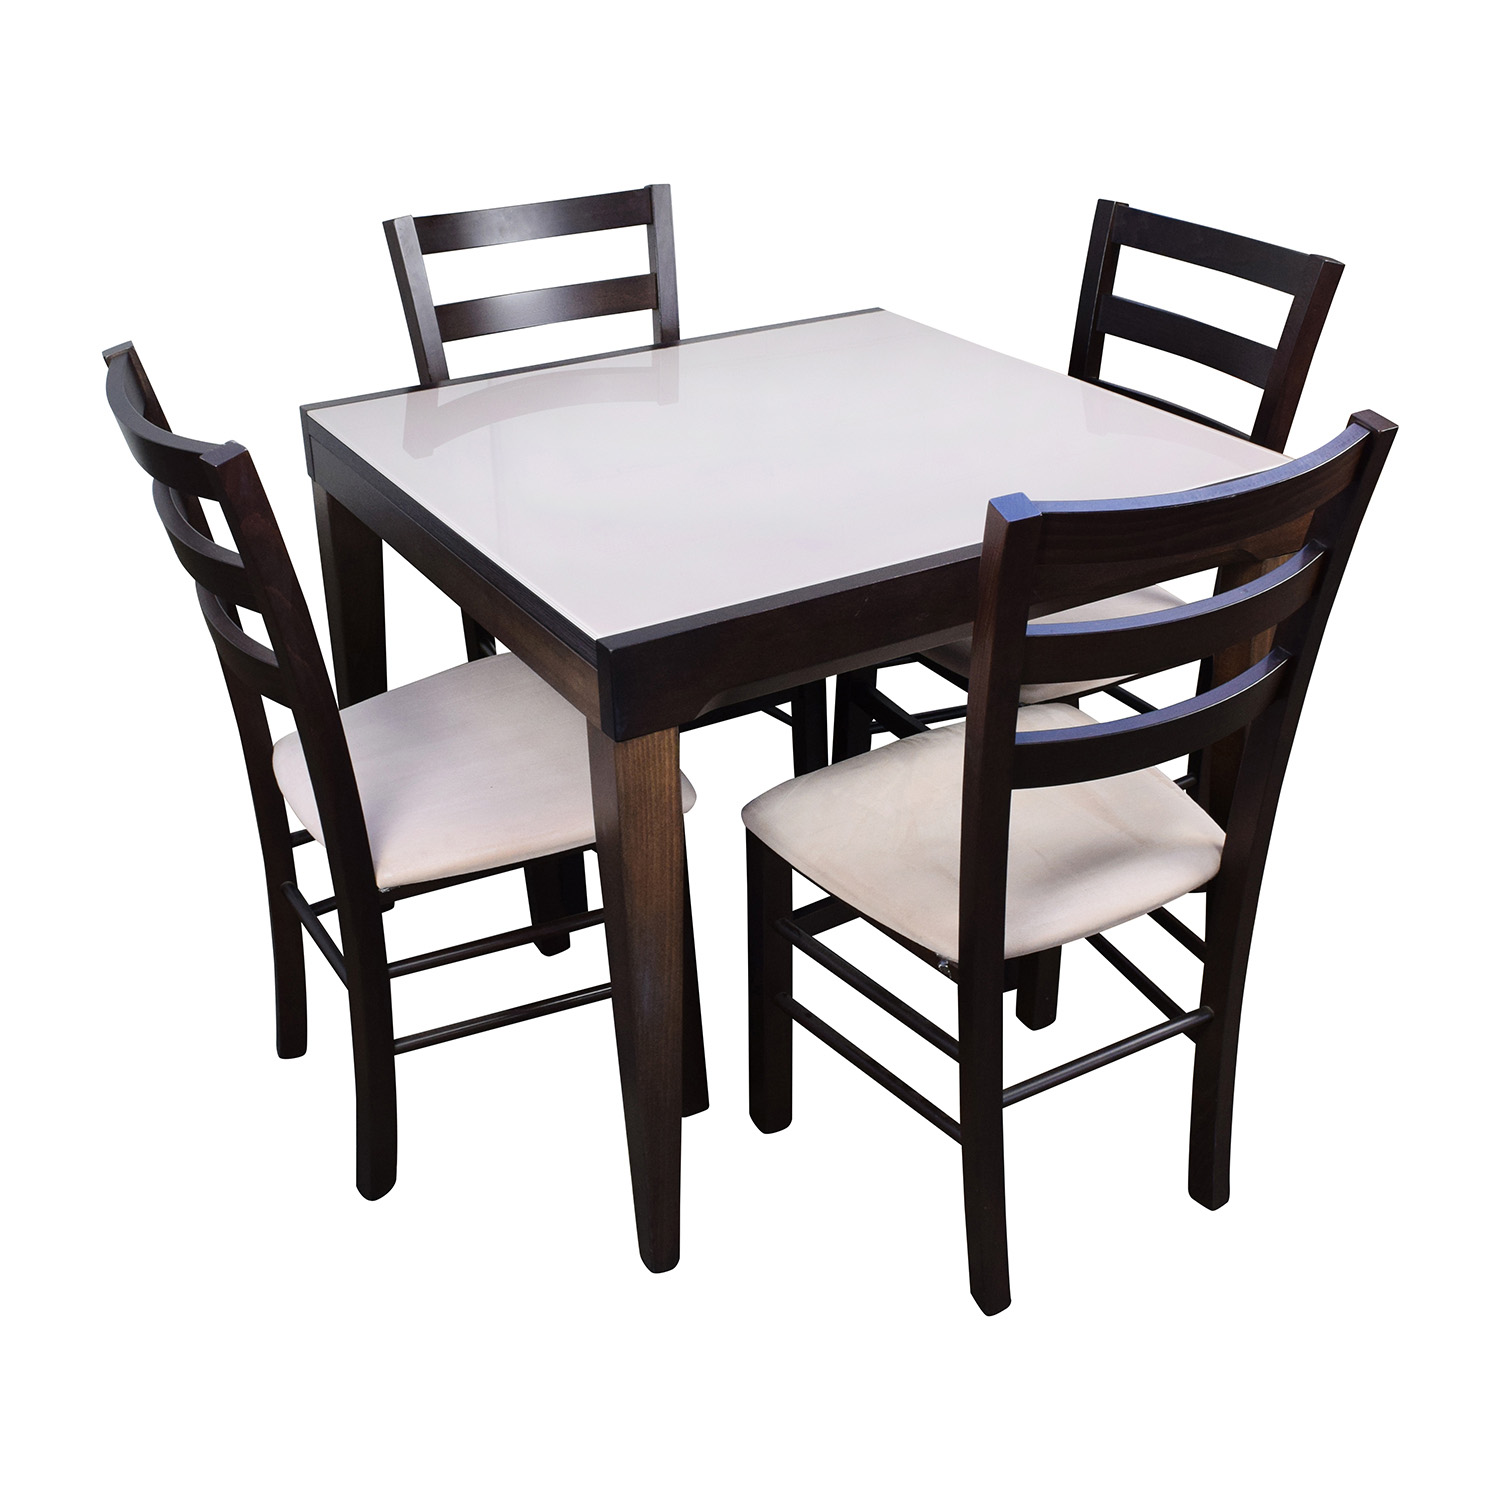 Macy's Macy's Cafe Latte Five-Piece Extendable Dining Set second hand